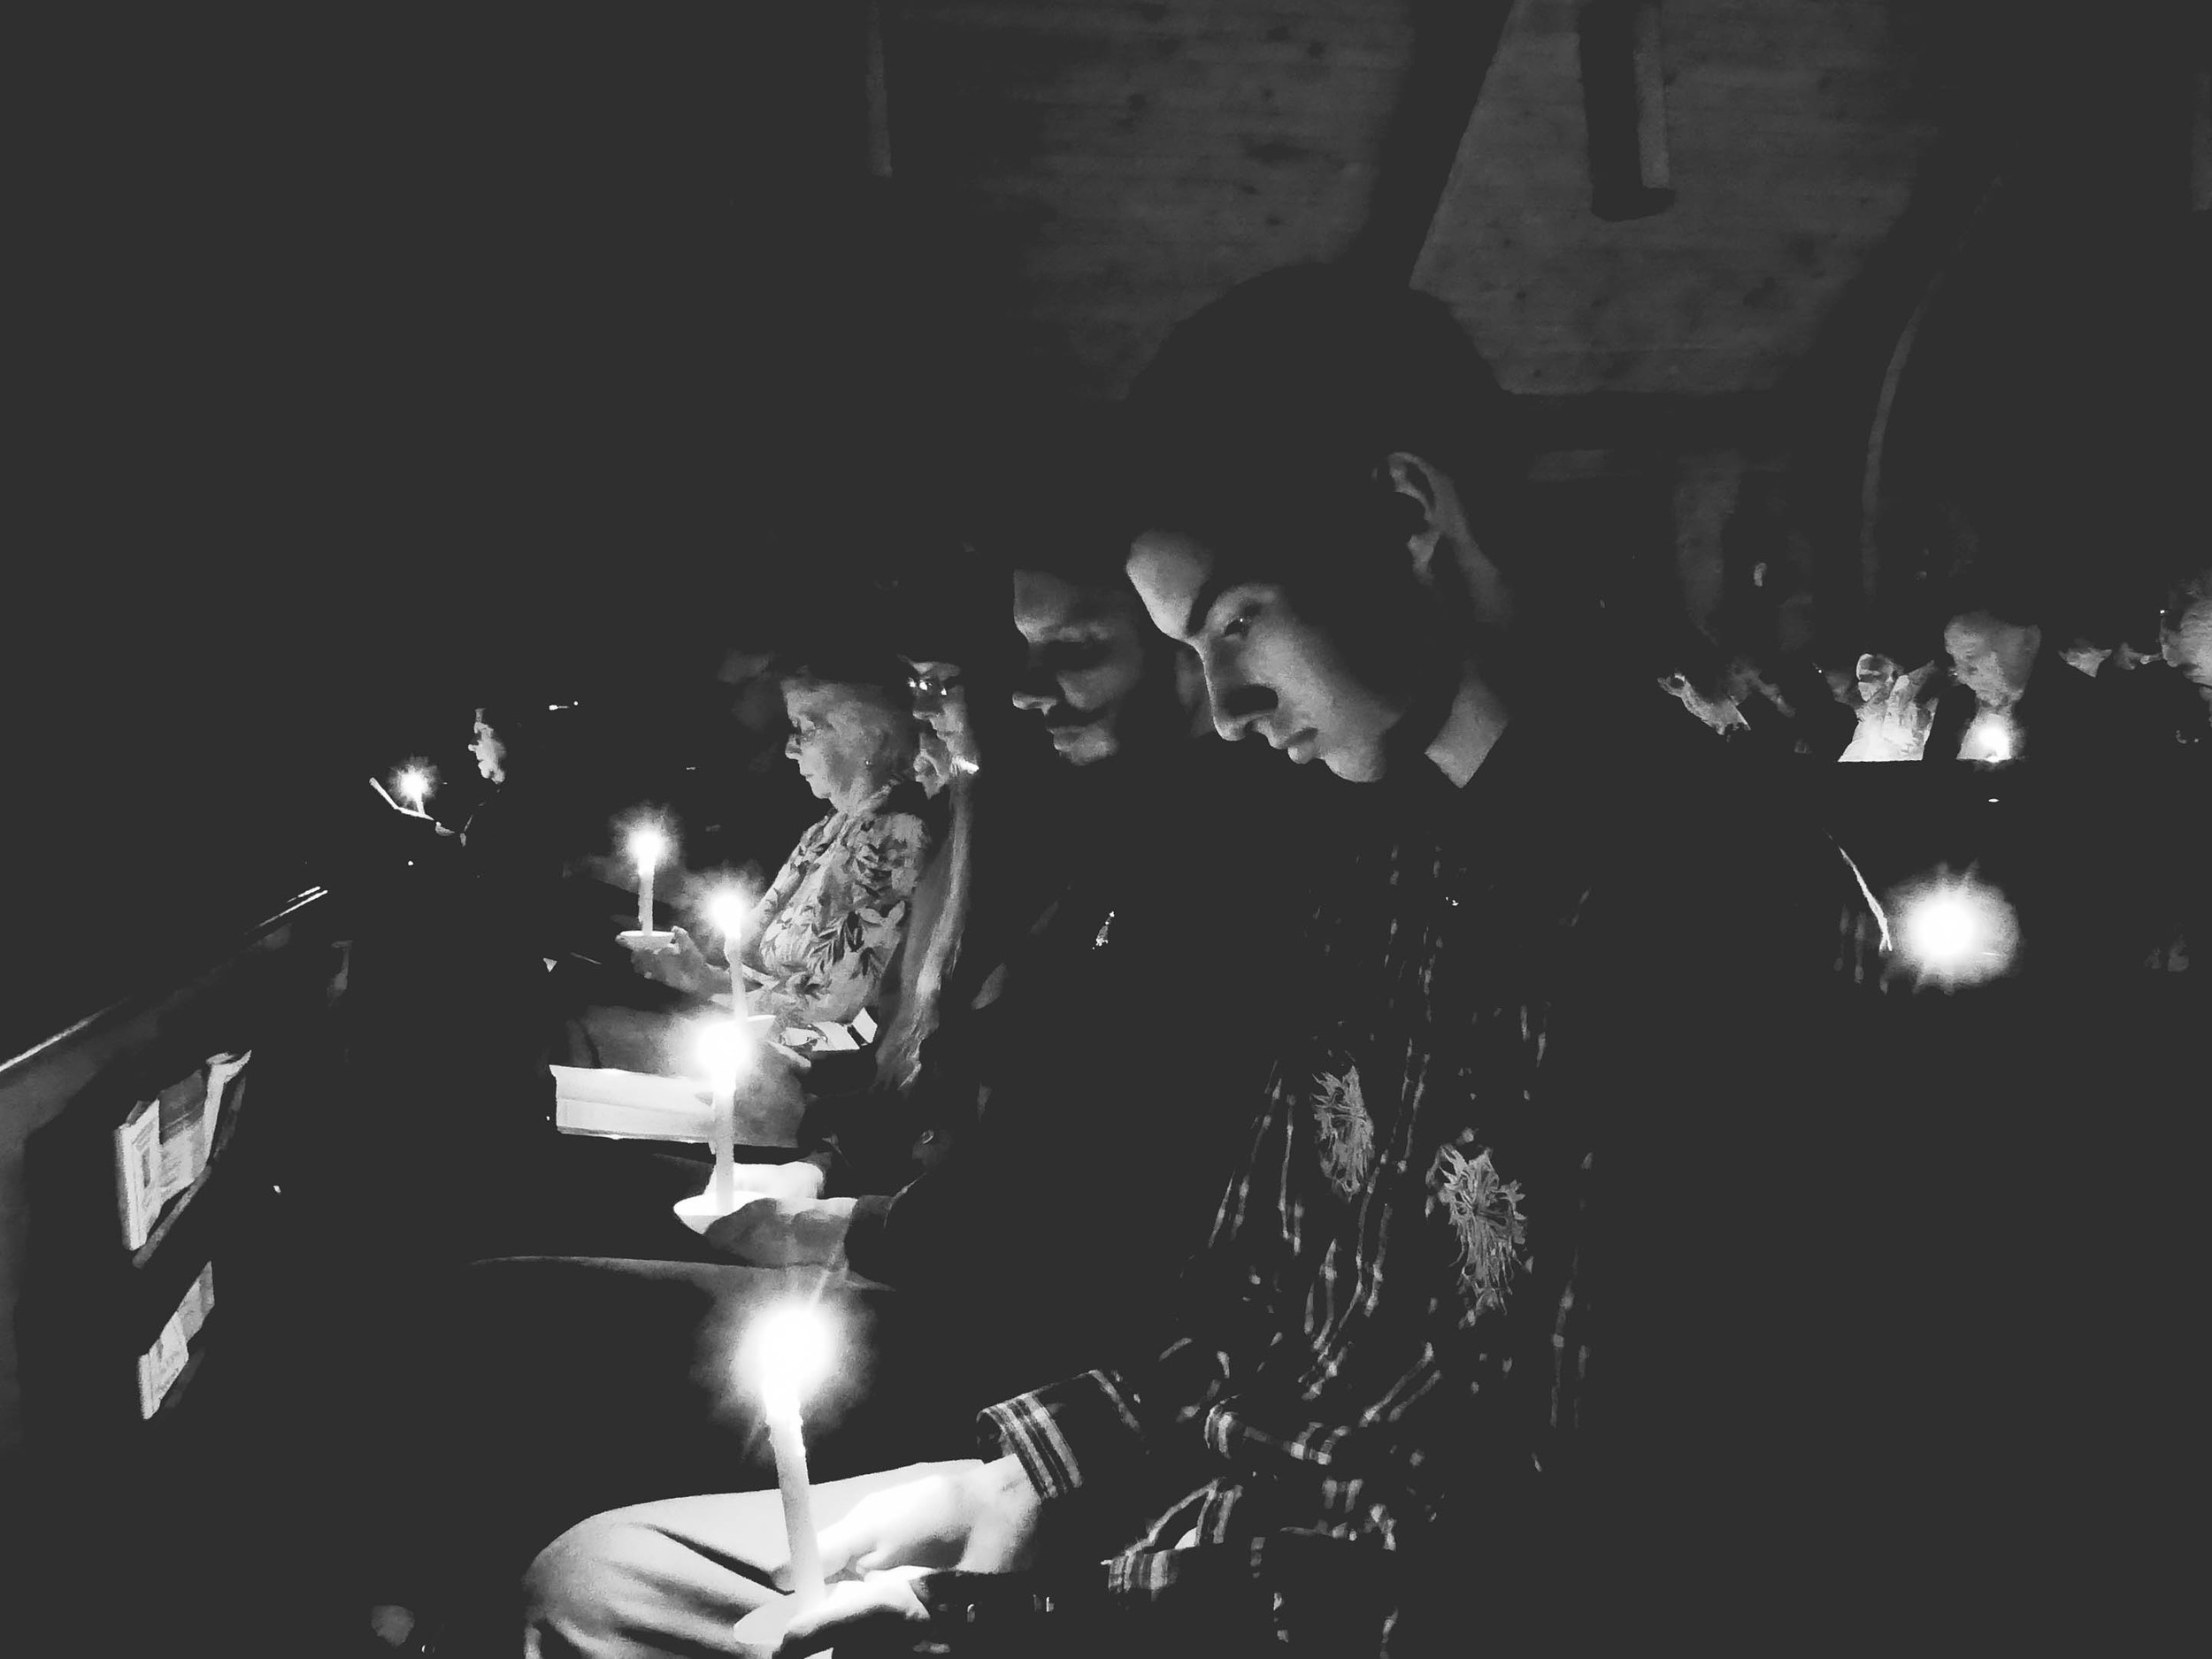 Candle blk & wht.jpg